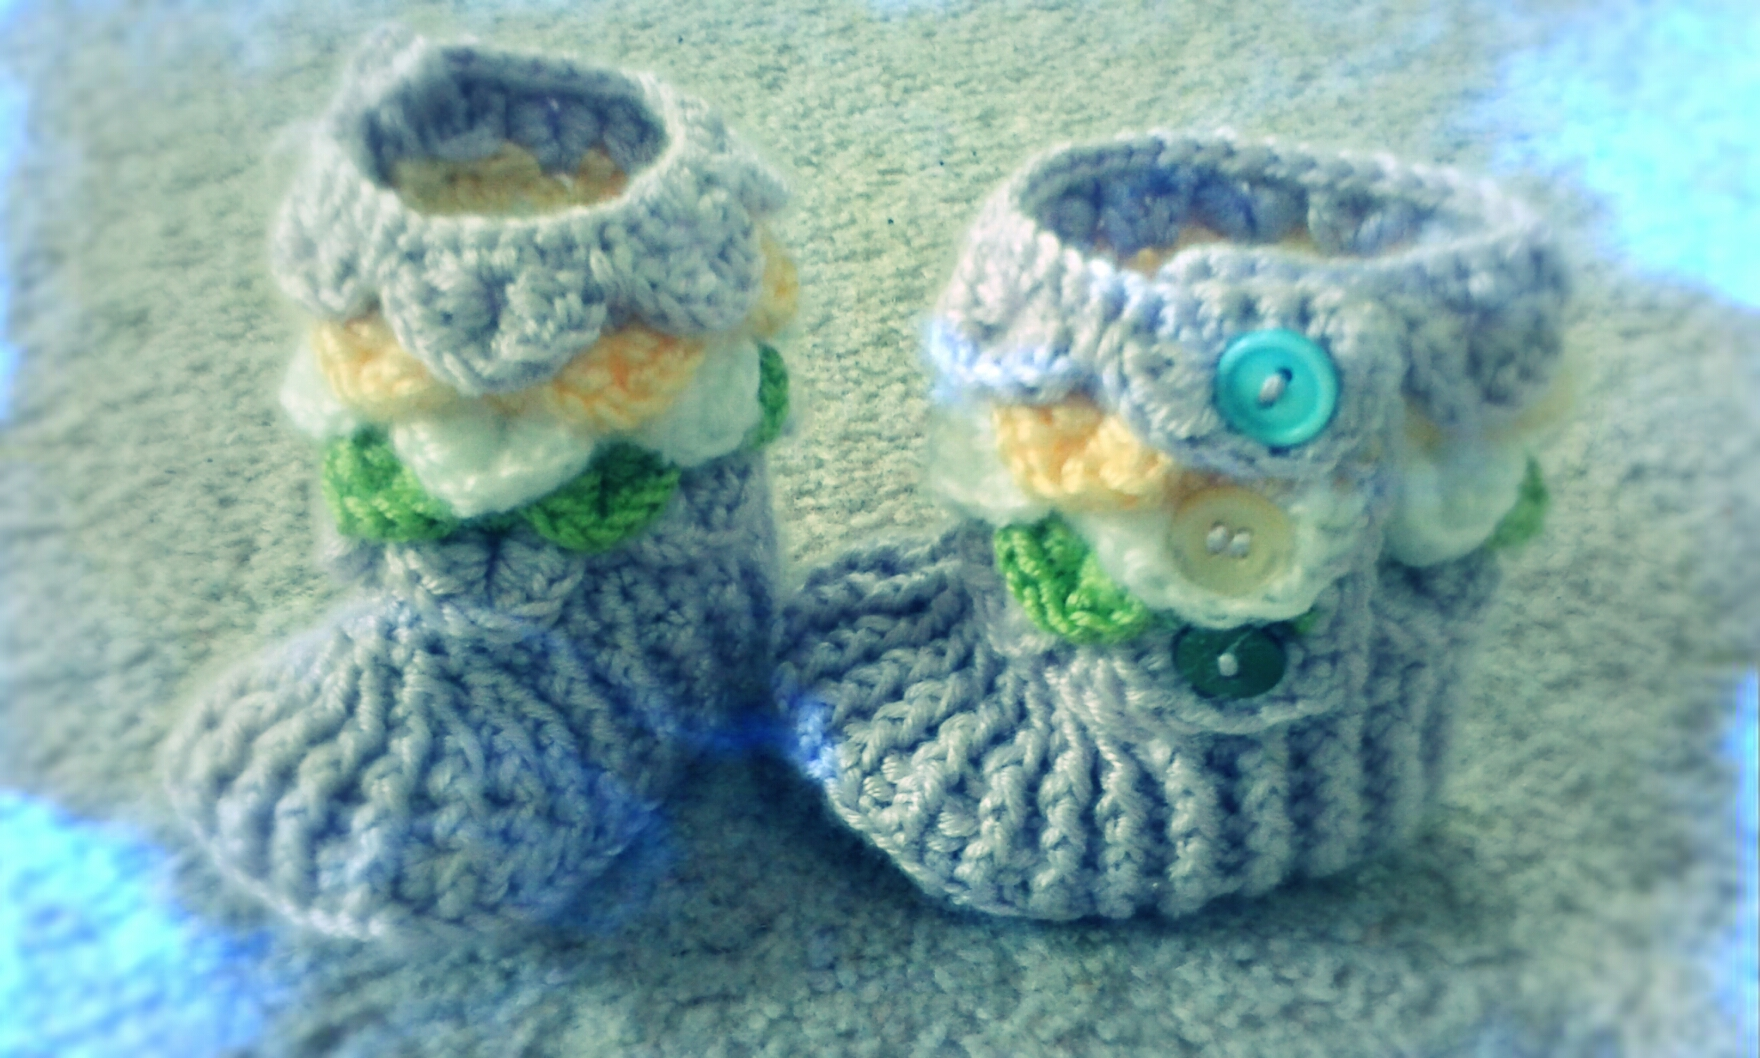 More Baby Crochet Projects (perhaps the last for a while!)